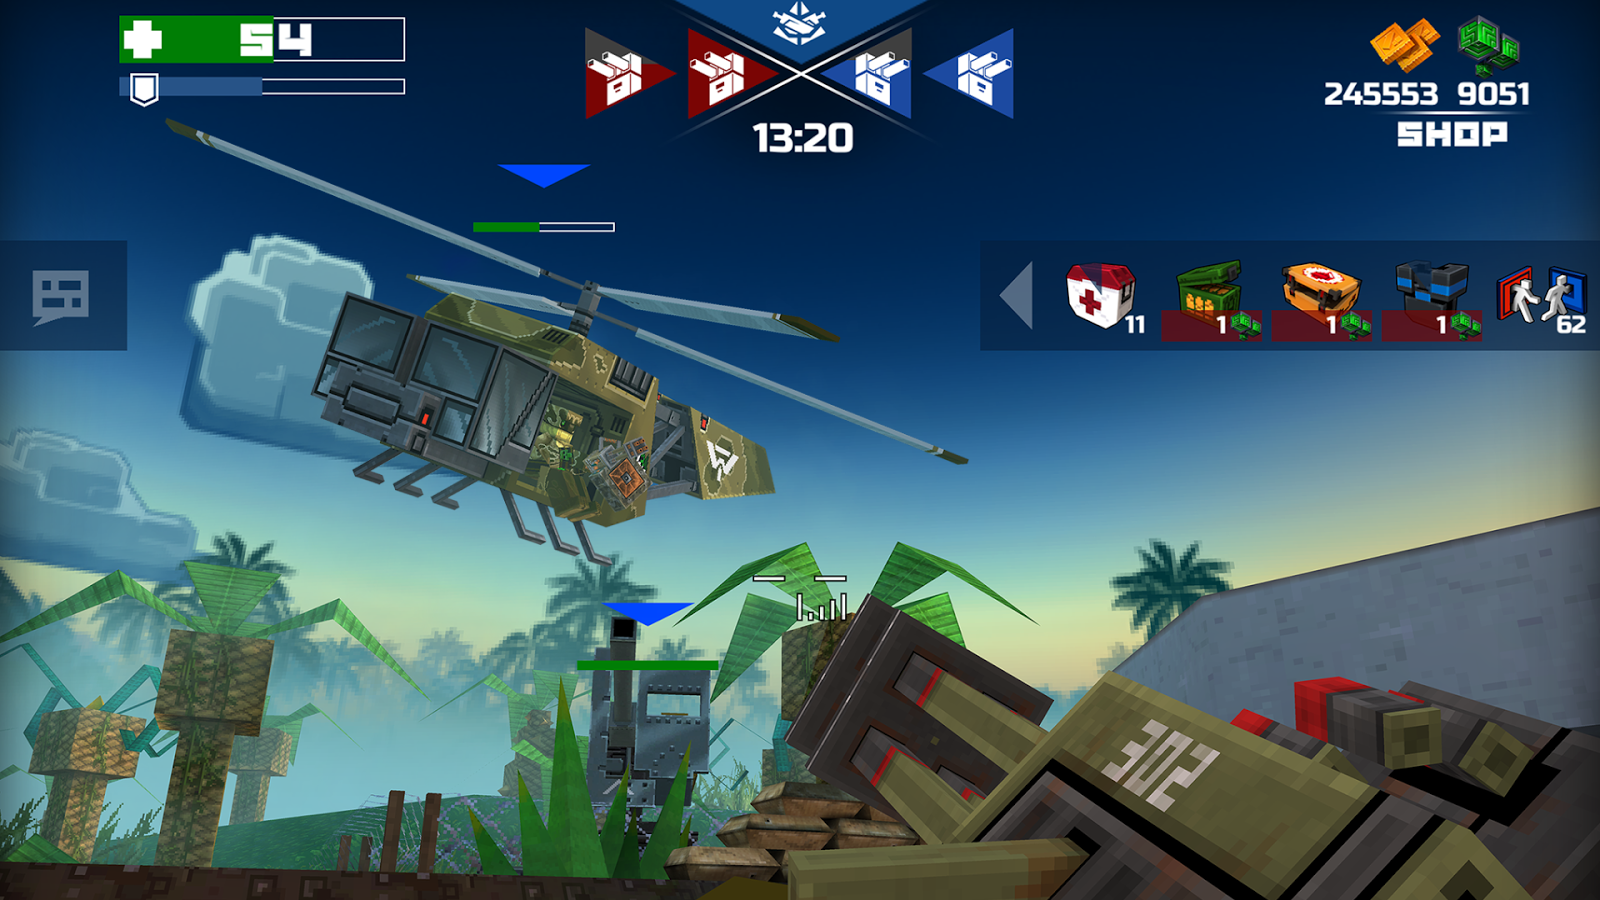 Pixelfield - Best FPS MOBA Strategy Game Screenshot 9